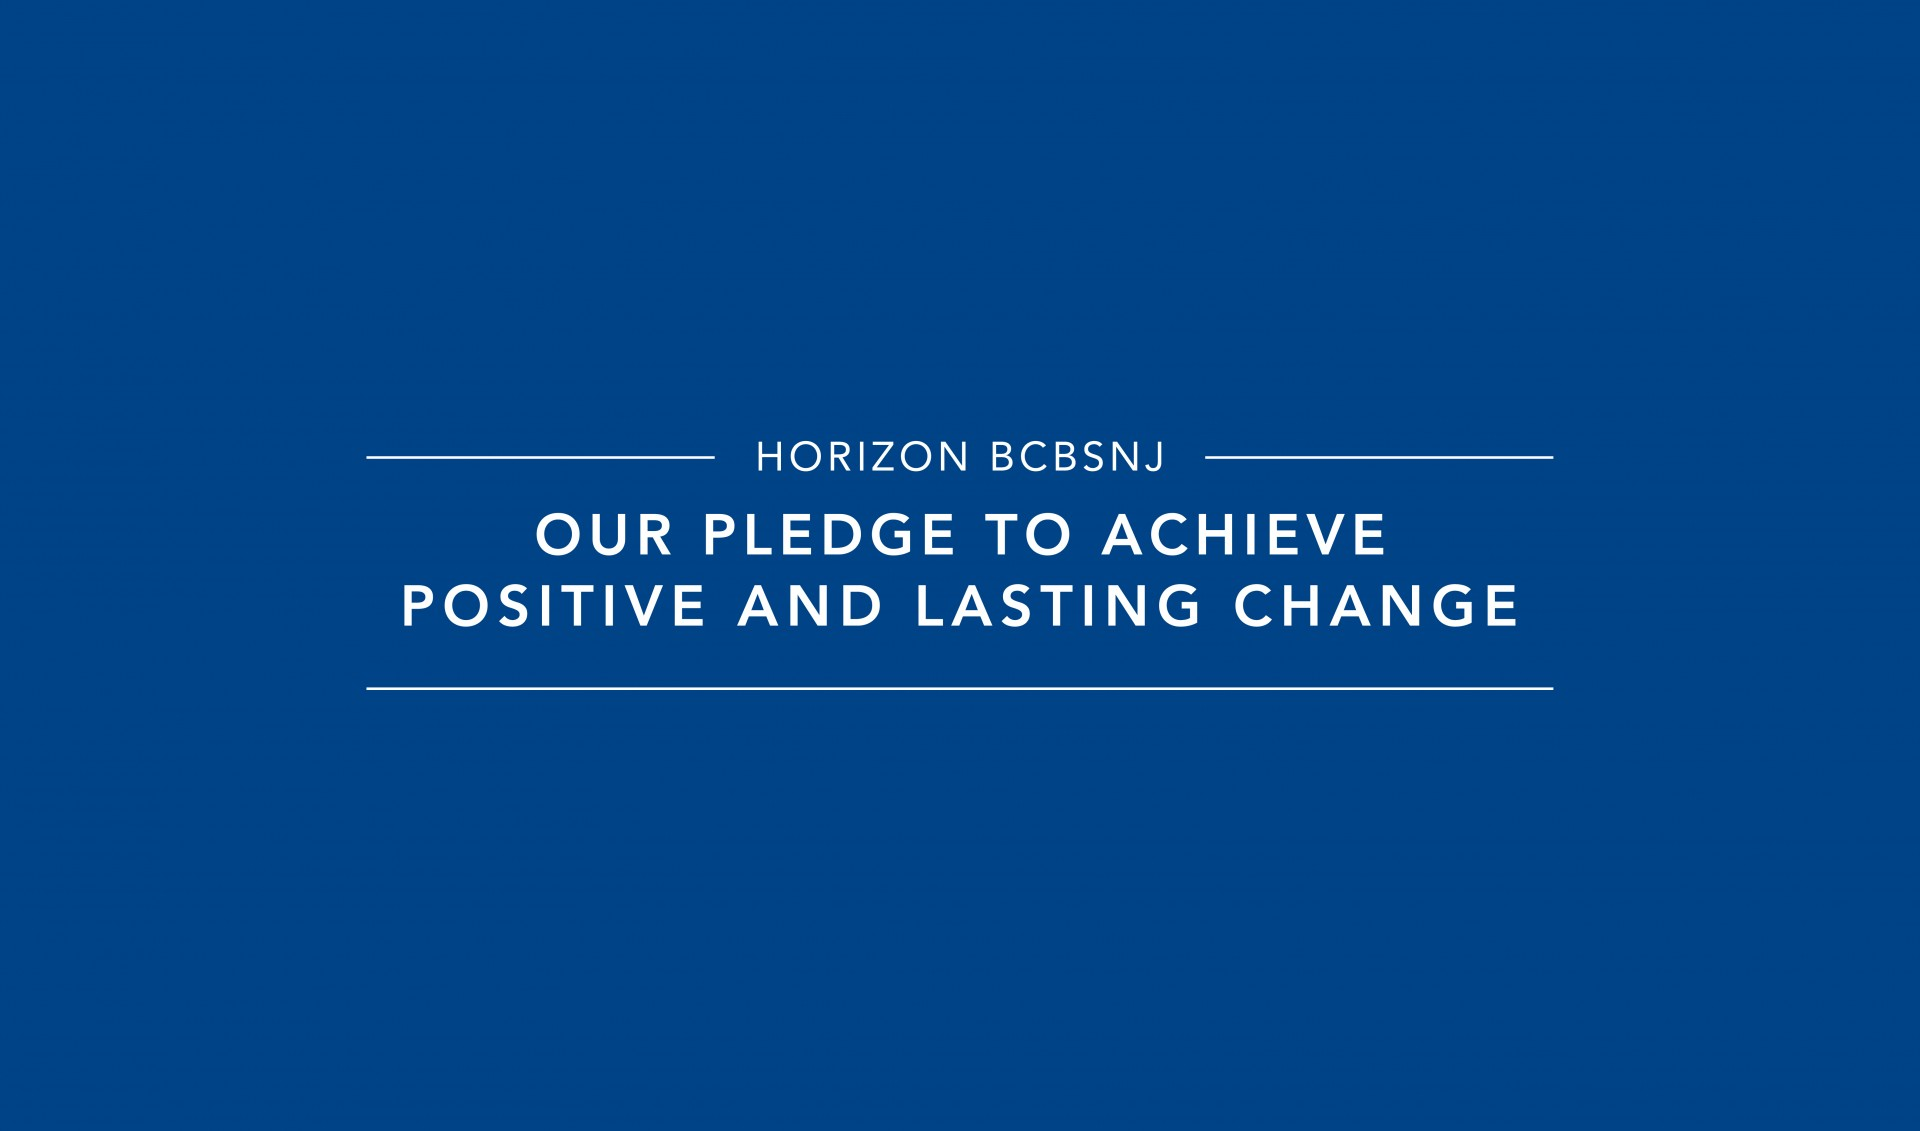 Our Pledge - Horizon BCBSNJ